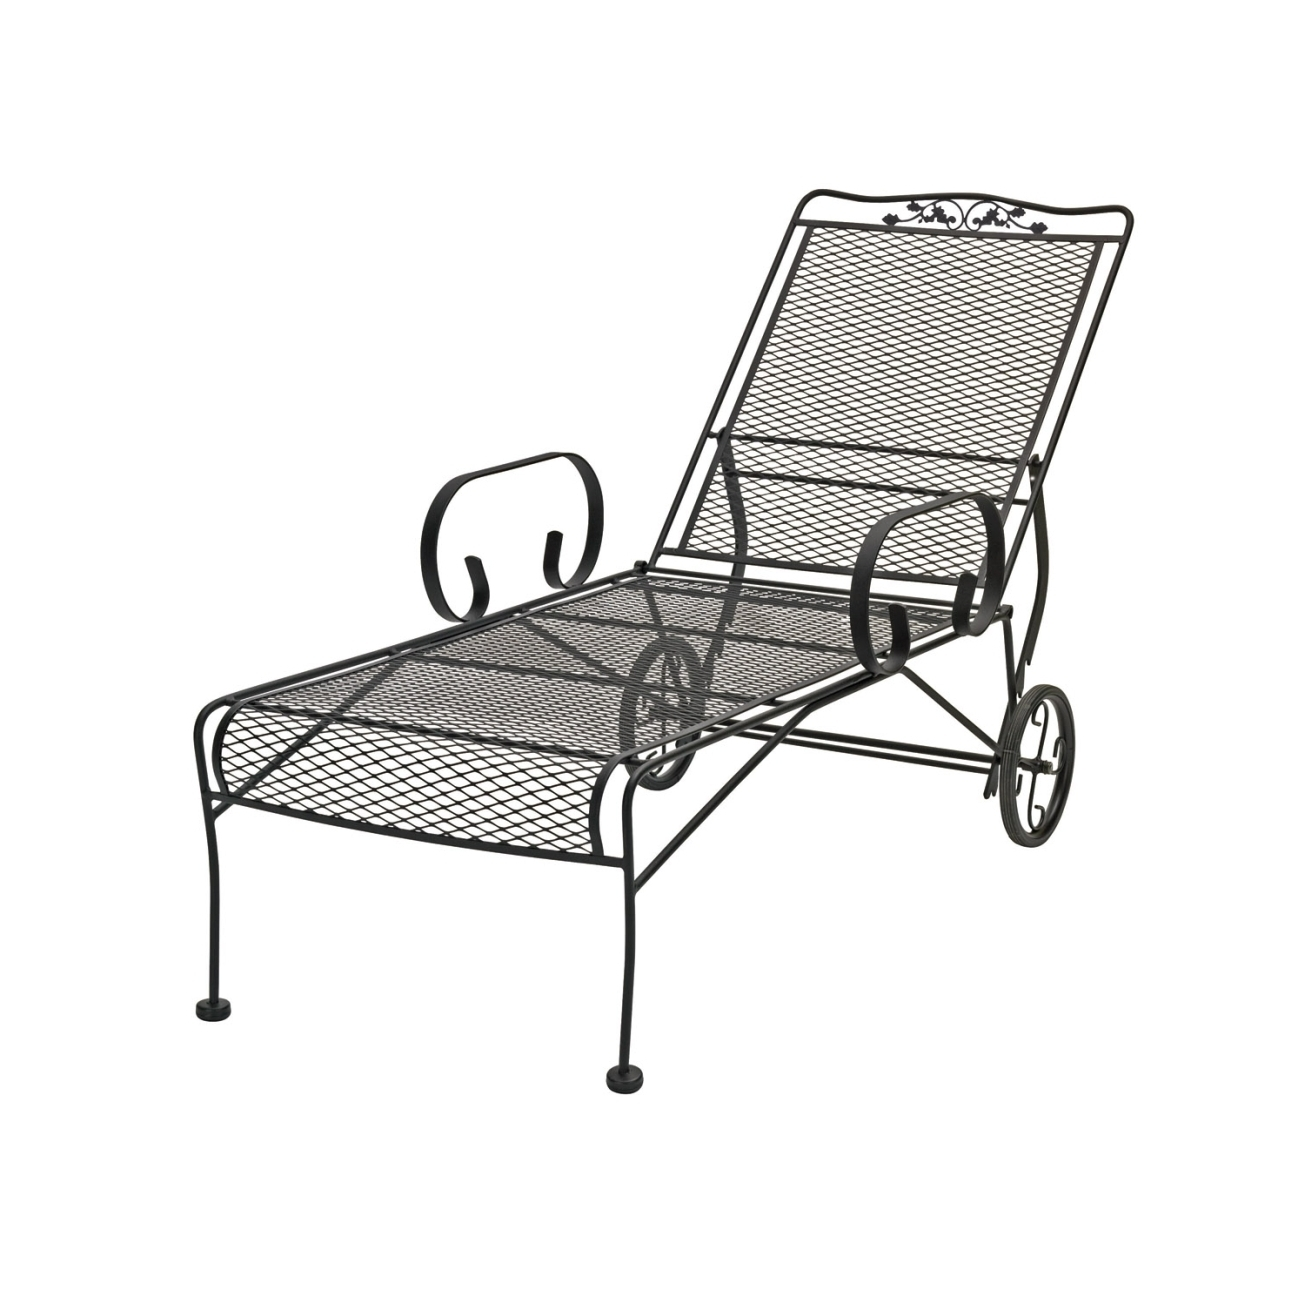 Most Current Outdoor Patio Chaise Lounge Chairs Within Lounge Chair : Discount Outdoor Furniture Rolston Patio Furniture (View 8 of 15)